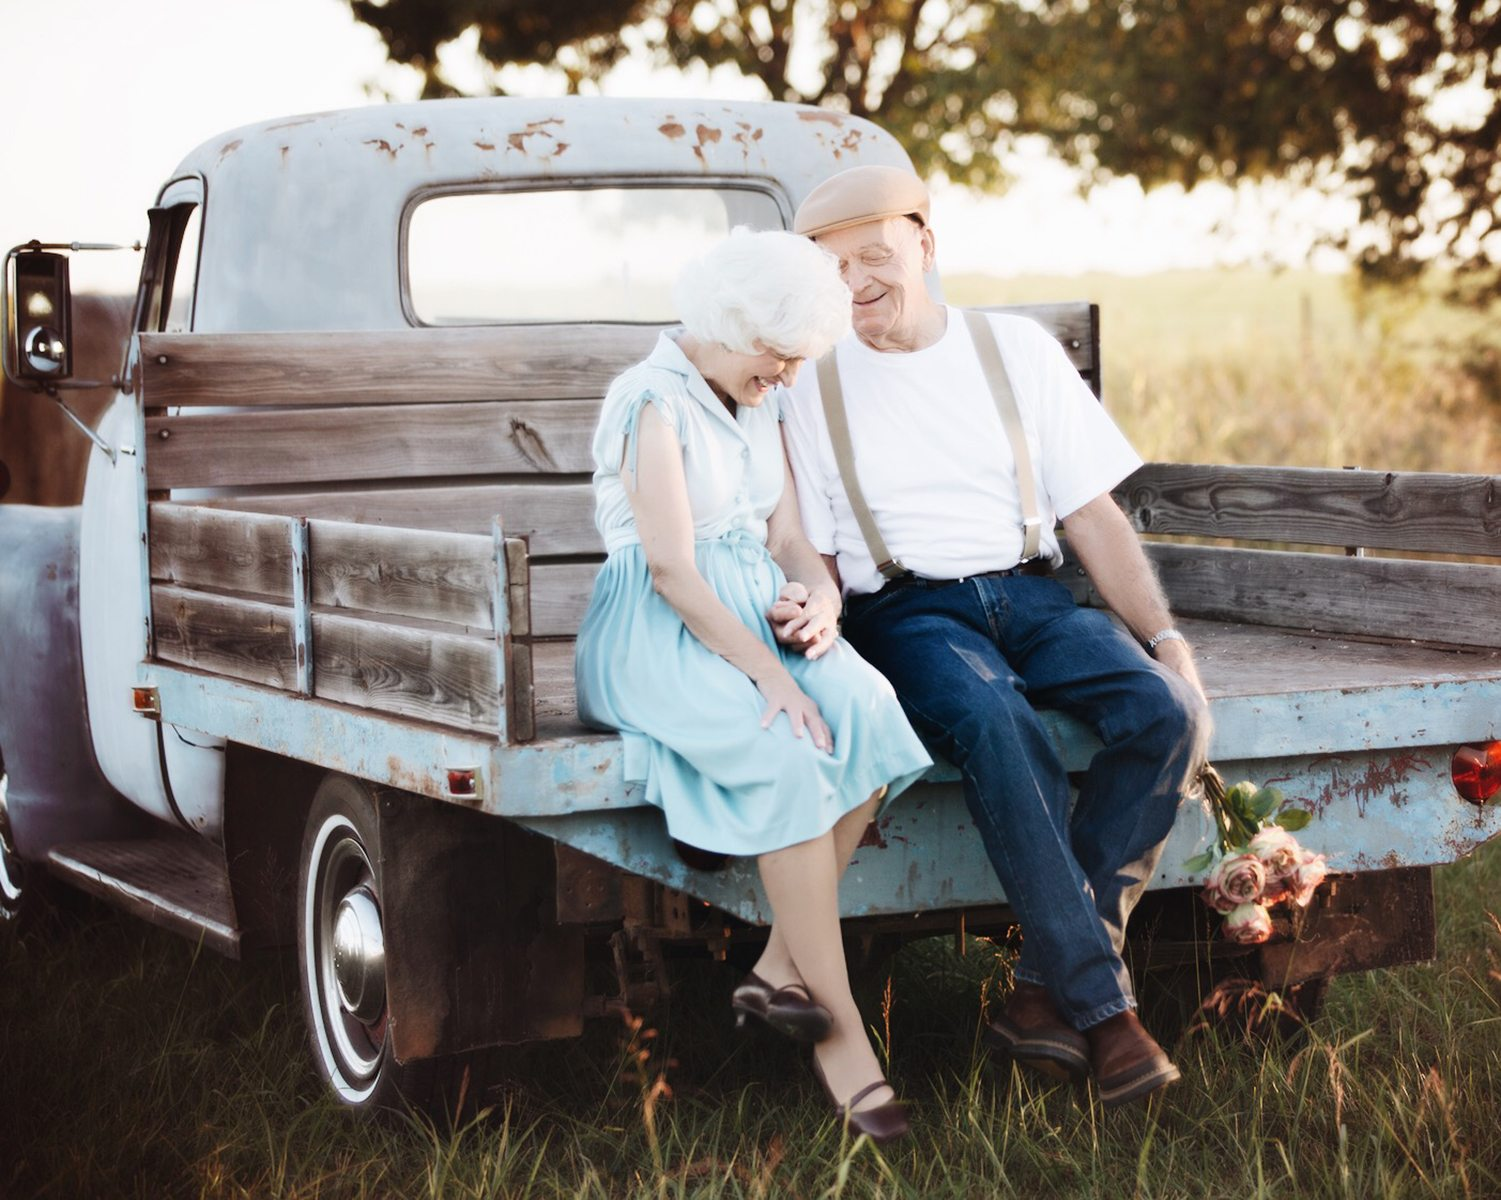 57 Years Later This Couple Is Goals In Real Life